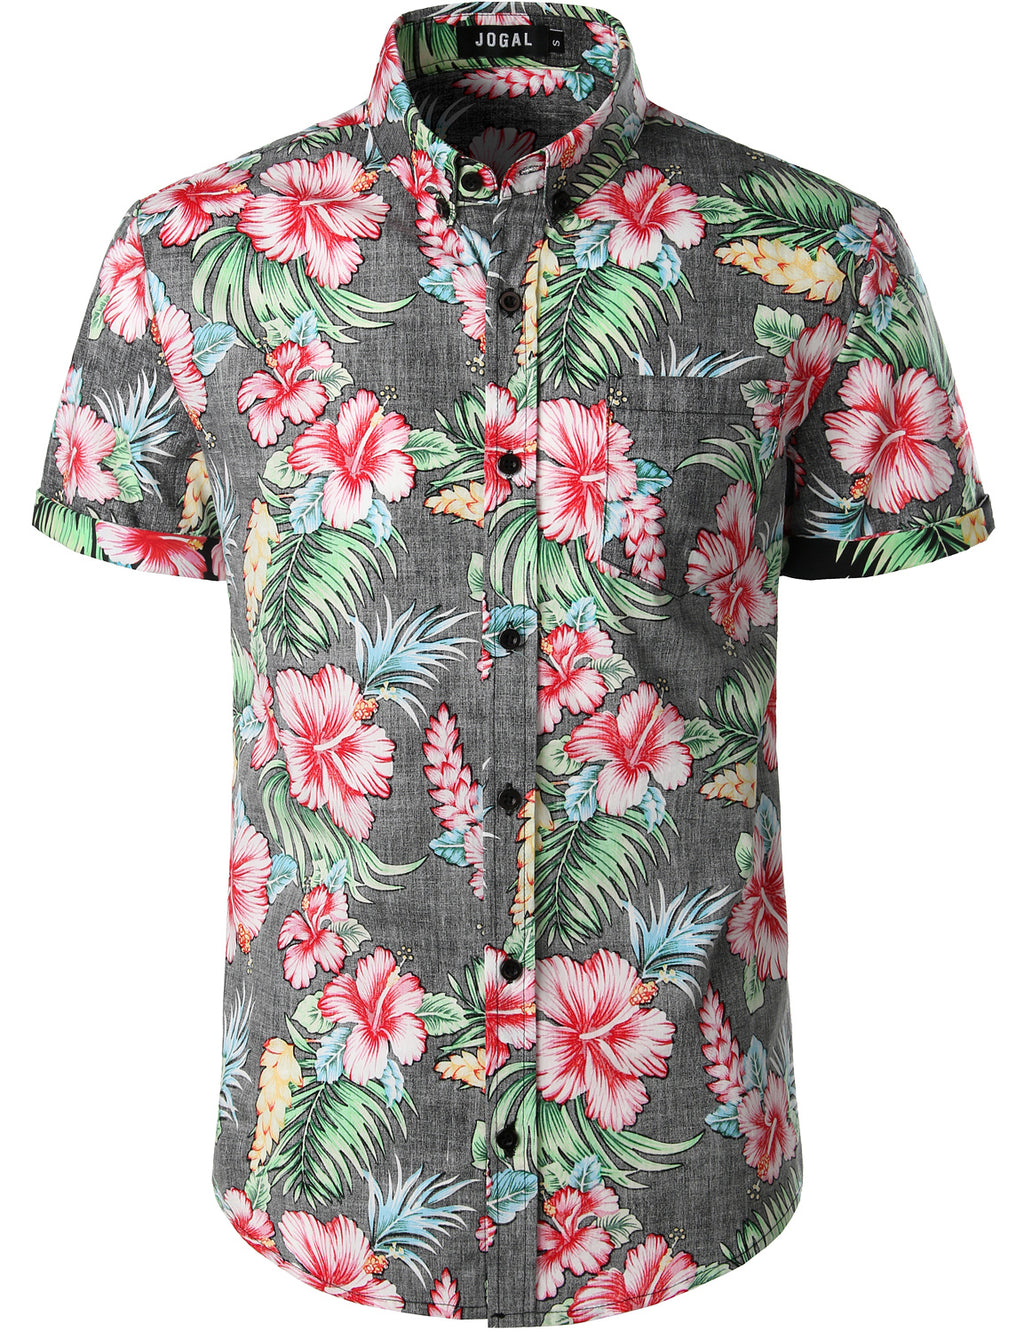 JOGAL Men's Flower Casual Button Down Short Sleeve Hawaiian Shirt (Black)